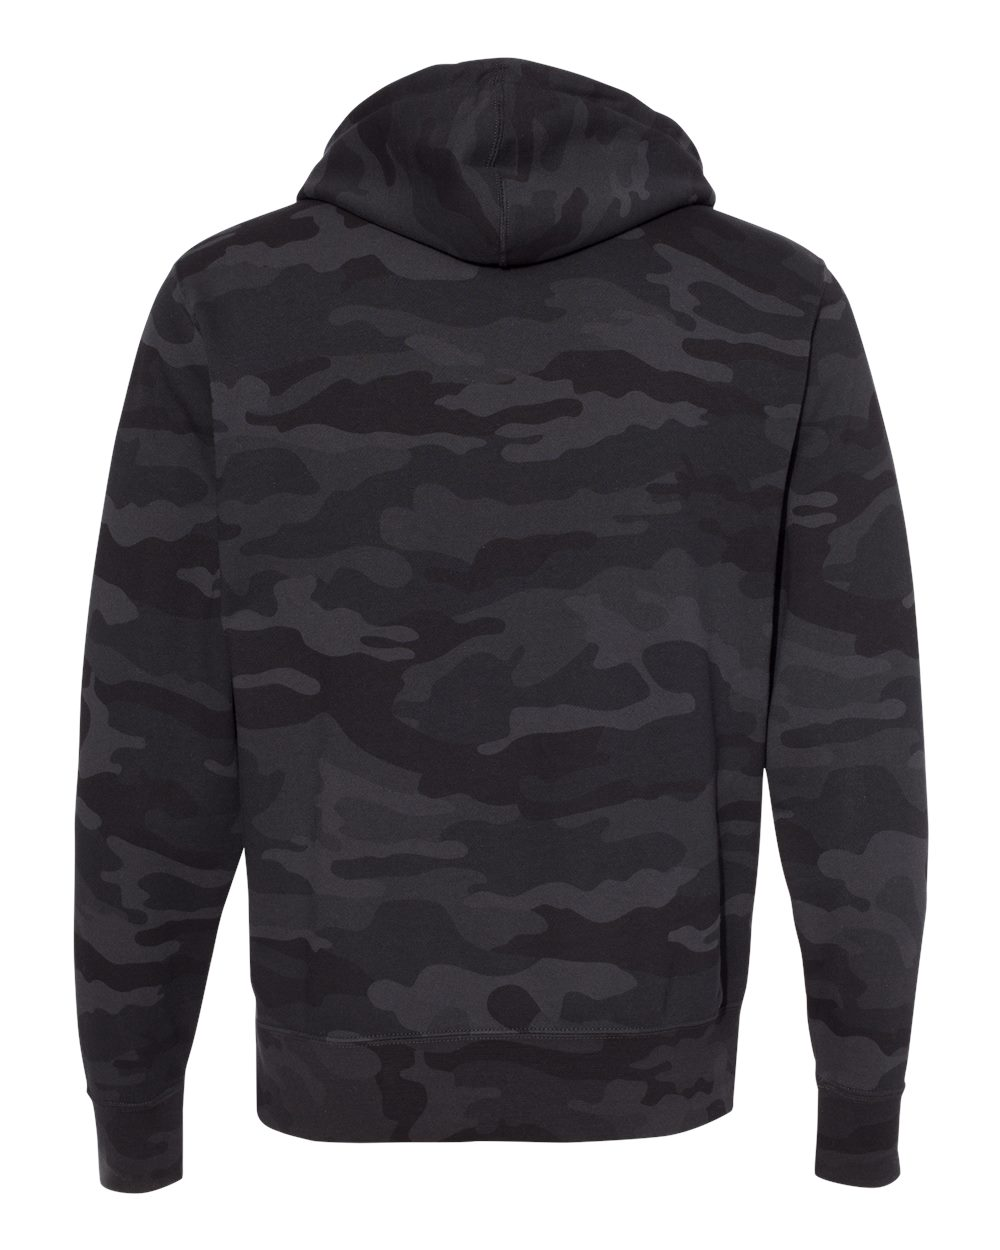 Independent-Trading-Co-Unisex-Hooded-Pullover-Blank-Plain-AFX90UN-up-to-3XL thumbnail 10